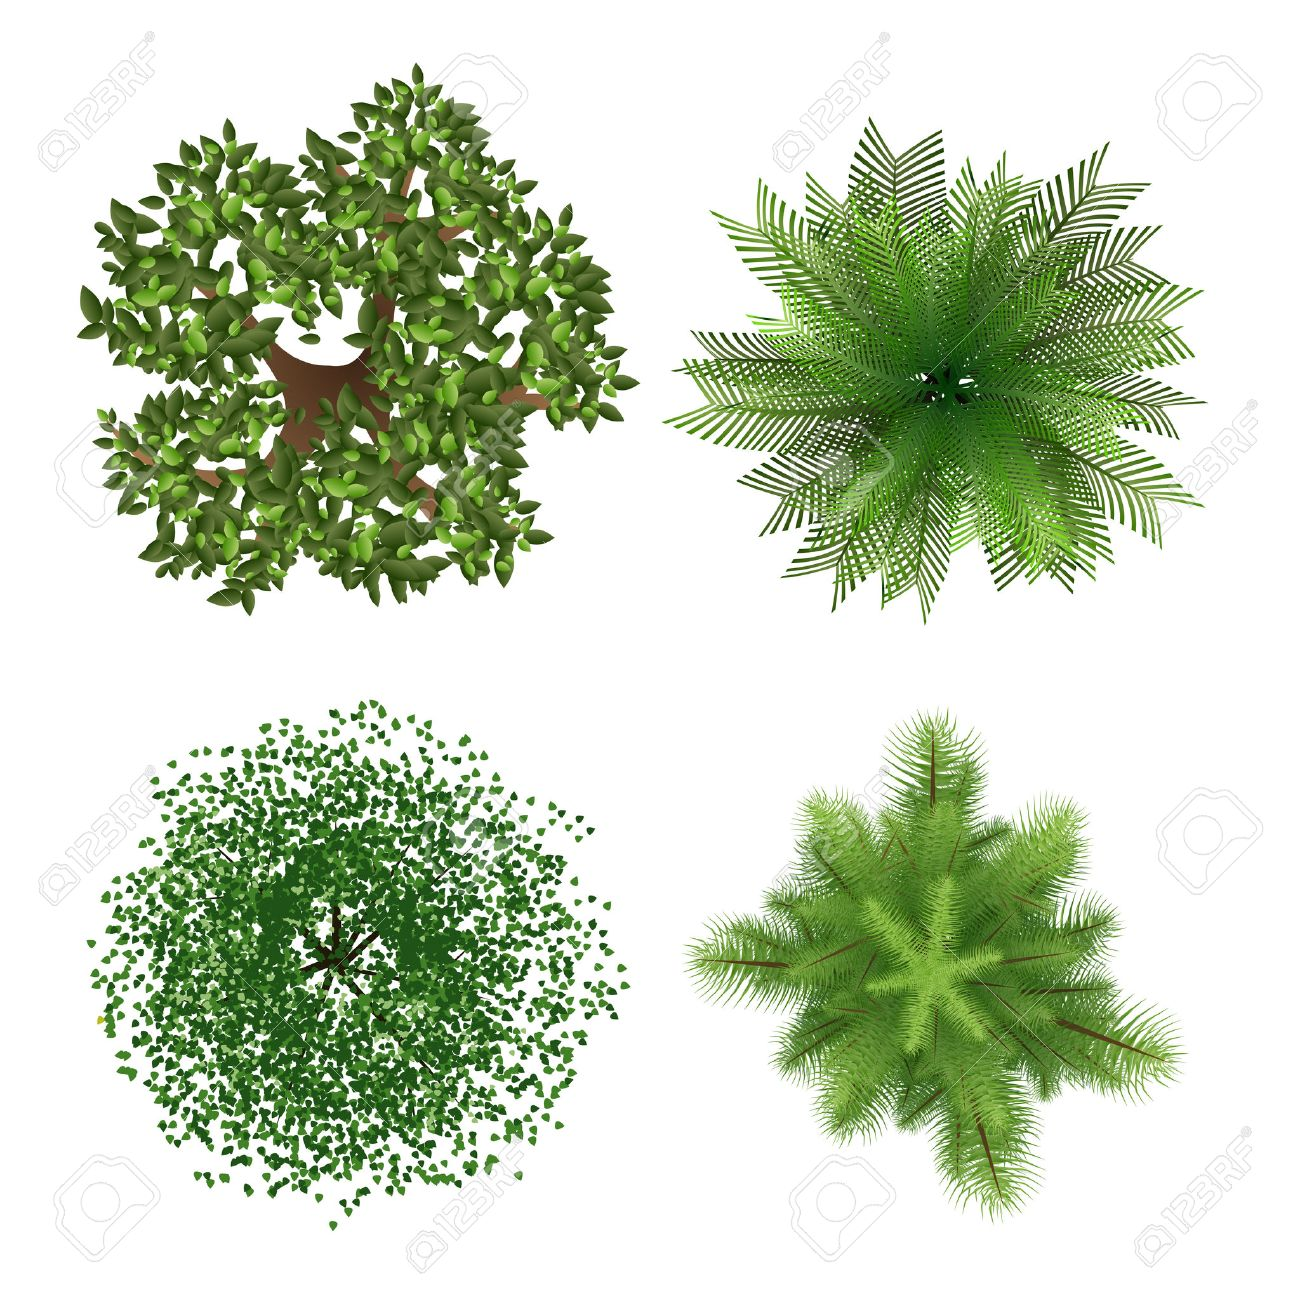 Plant top view vector in group download free vector art stock - Top View Top View Trees Illustration 37844671 Top View Trees Vector